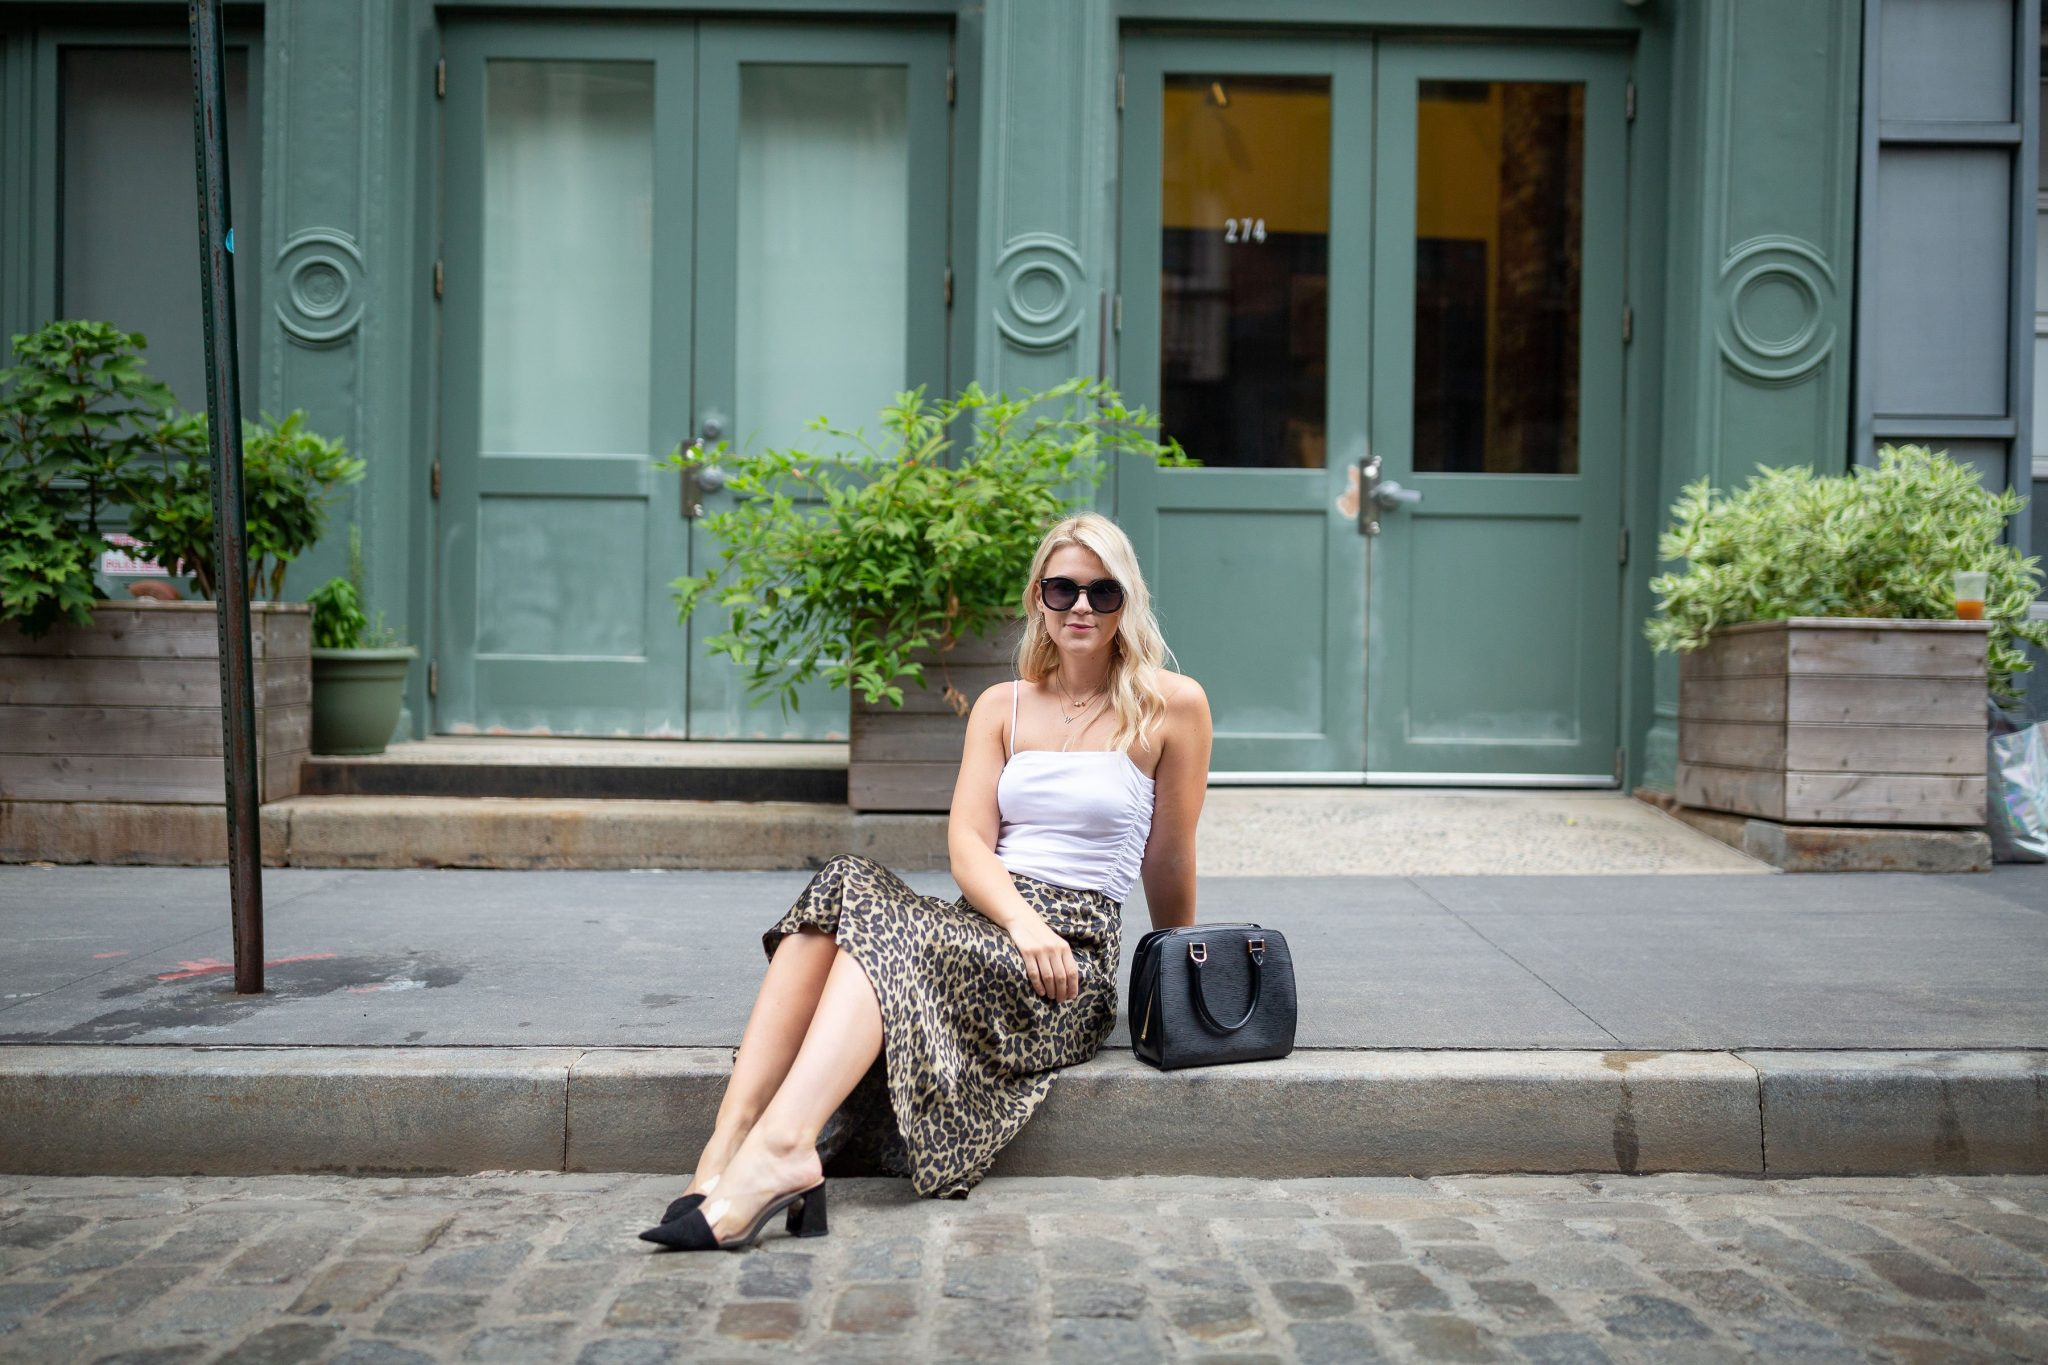 Leopard Skirt by popular Seattle tall fashion blog, Whit Wanders: image of a woman sitting on the curb of a cobble stone street in front of a green building and wearing a Free People Bodysuit, Zara Leopard Skirt, Zara Black Heels, and holding Louis Vuitton Tote.